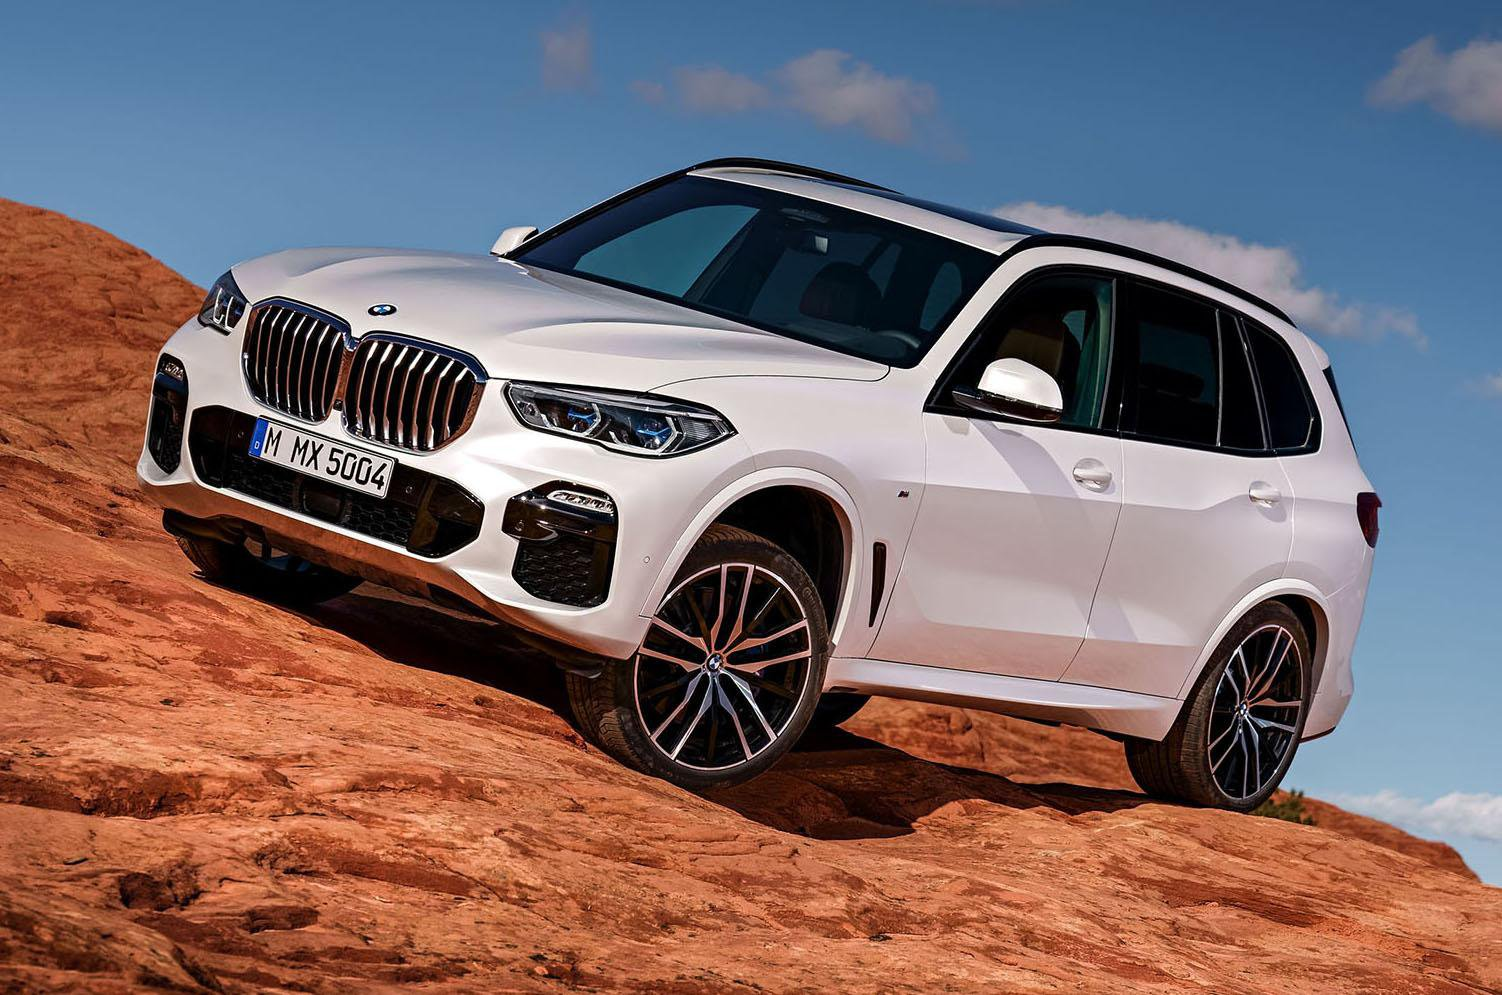 2018 BMW X5 off-roading